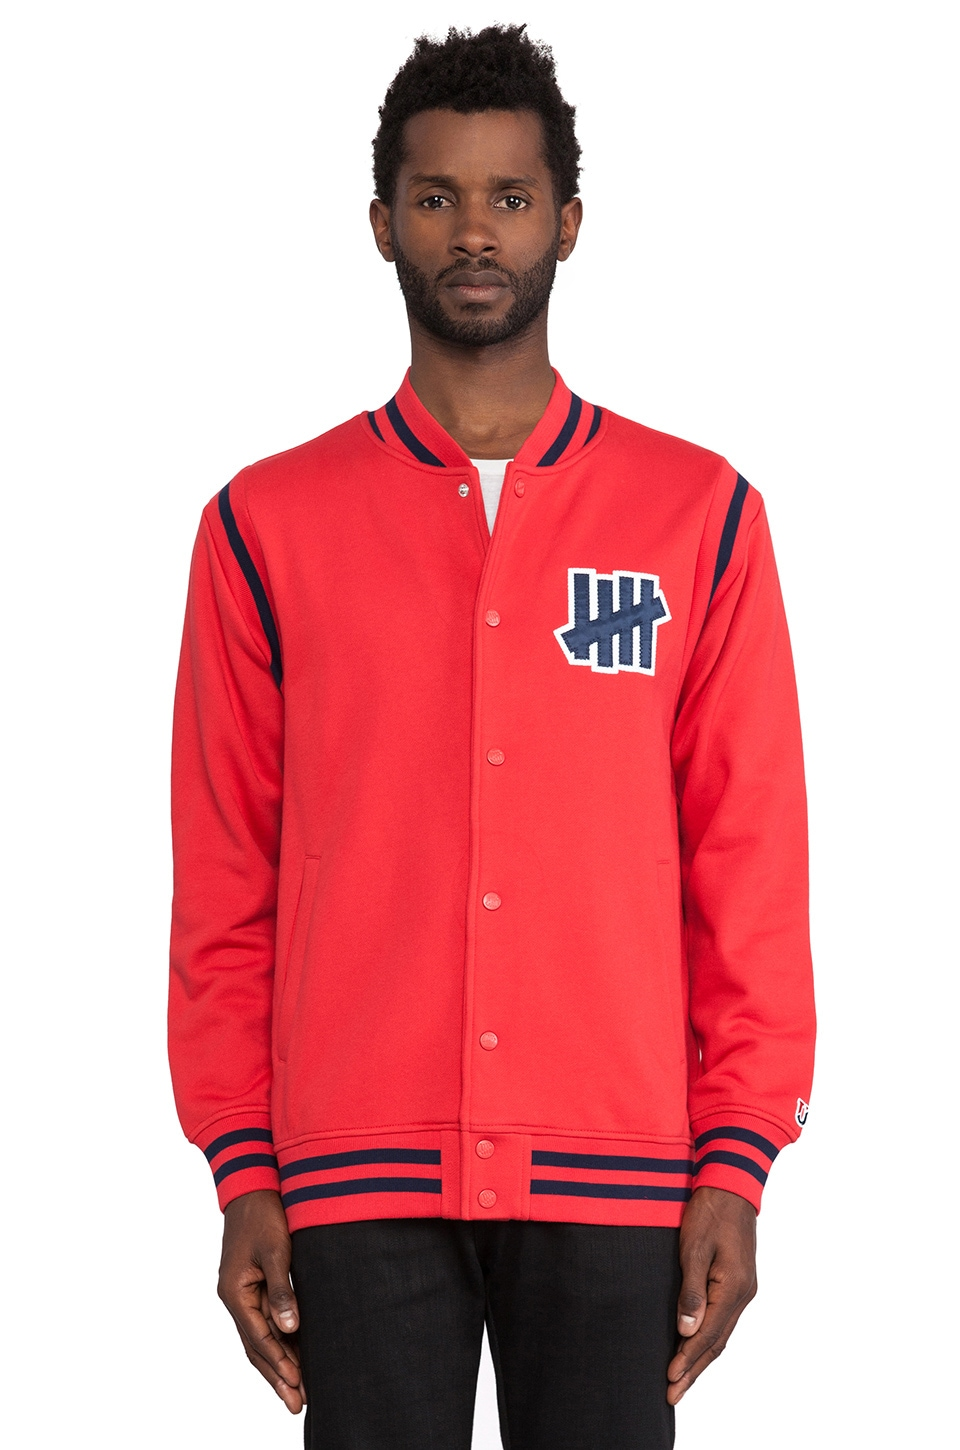 Undefeated Strike Varsity Jacket in Red